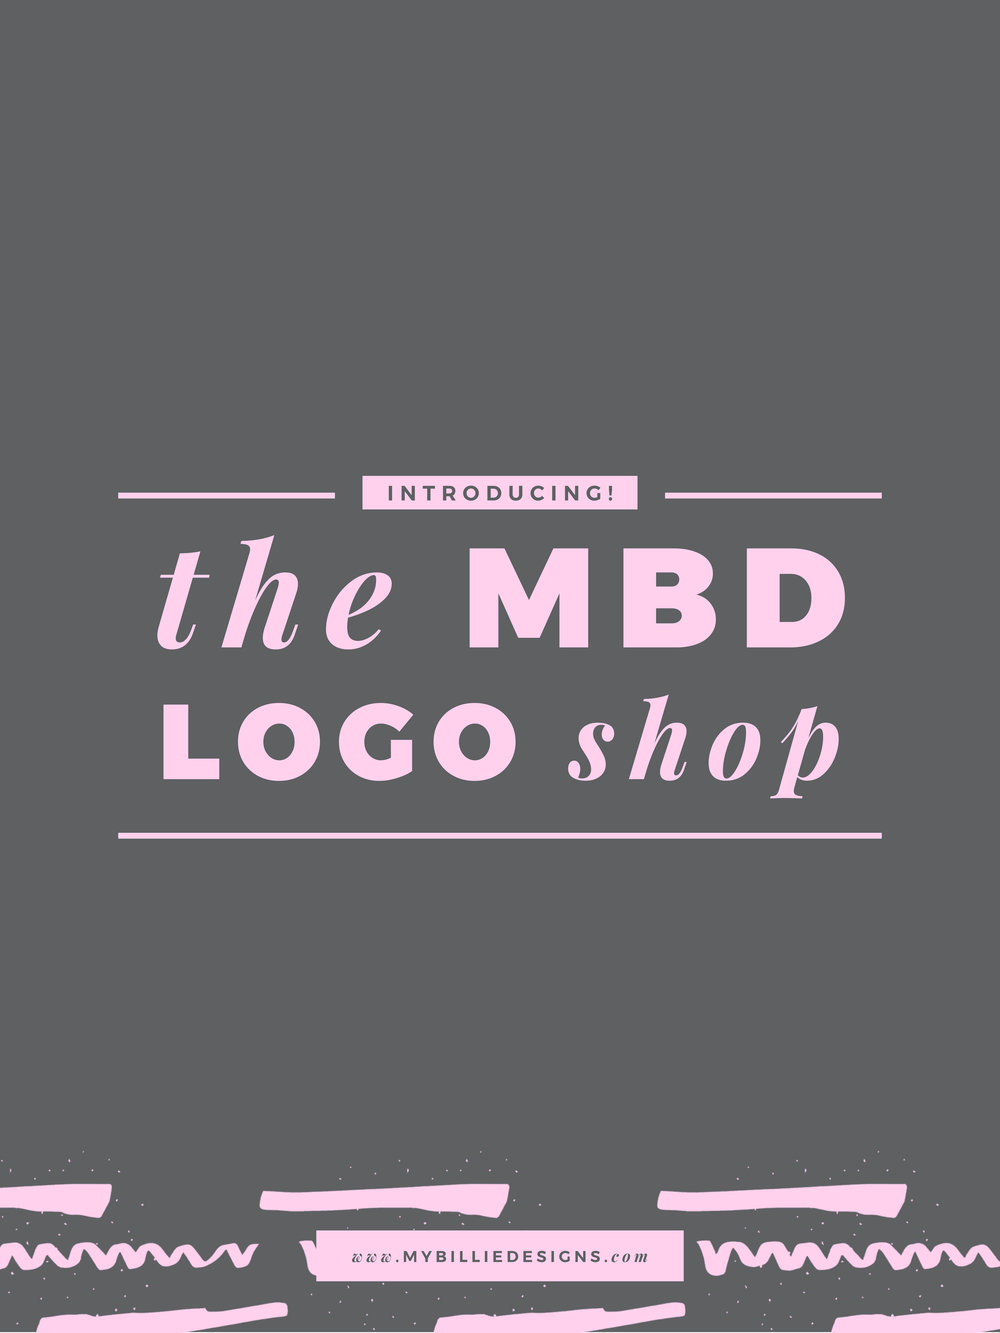 Introducing The MBD Logo Shop: you pick a logo, the studio customizes it for you, BAM!